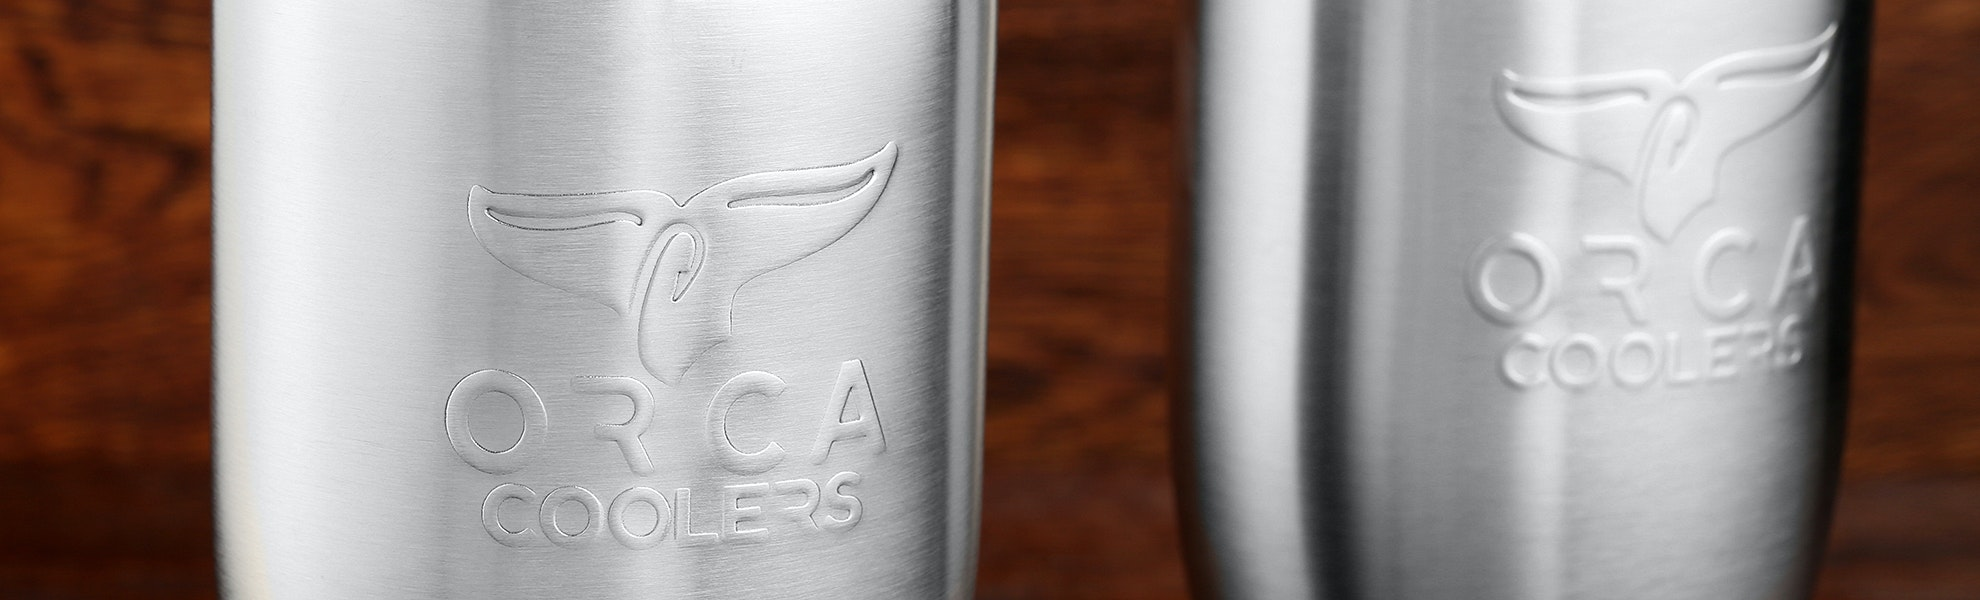 ORCA Chaser 27-oz Insulated Tumbler